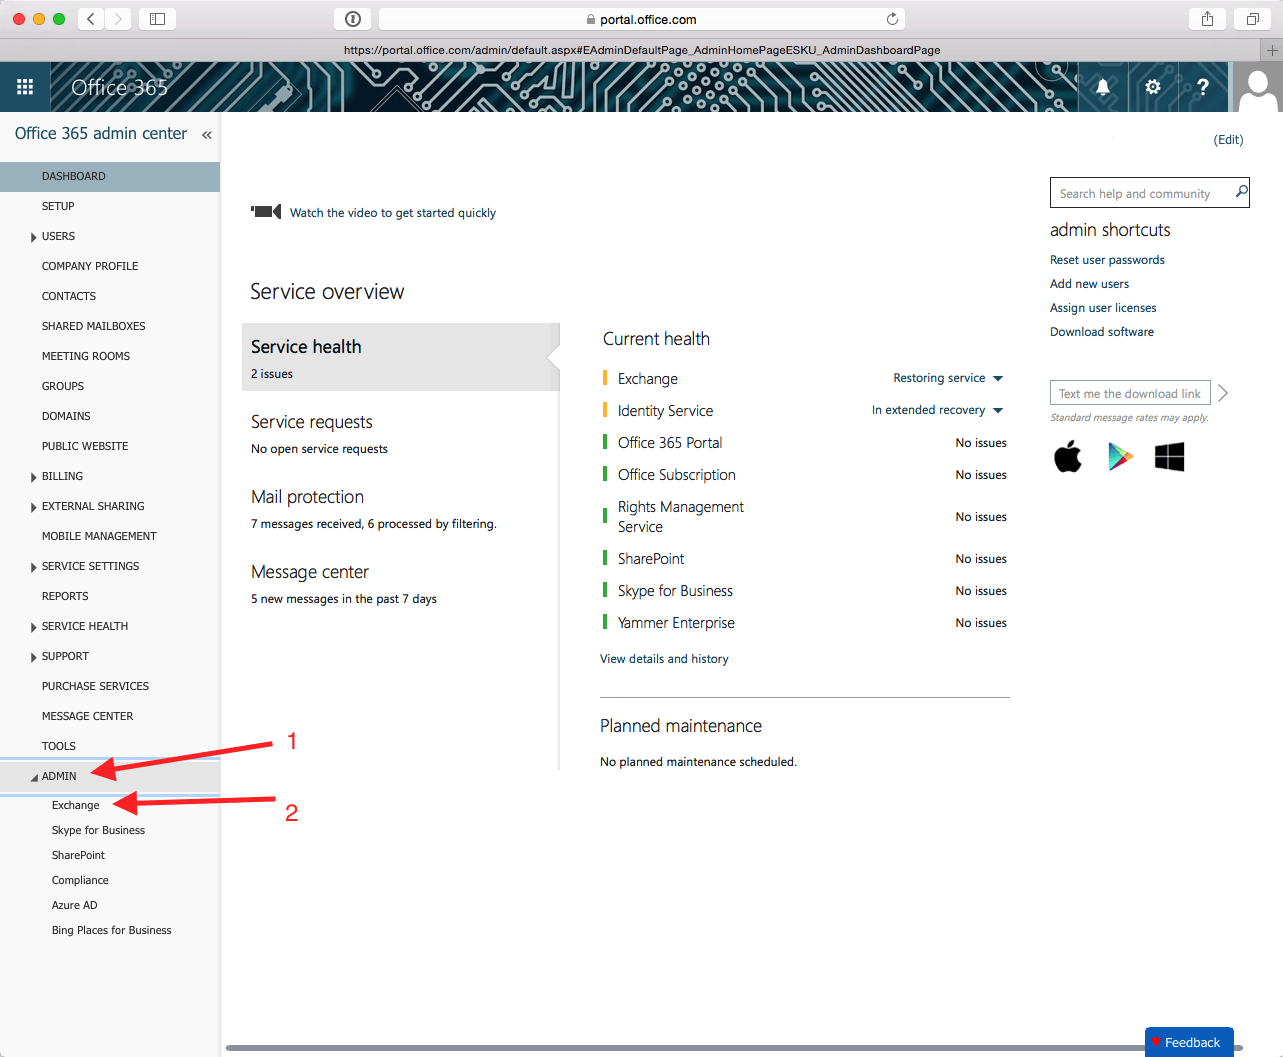 How to setup inbound mail rule for Office 365 from Barracuda